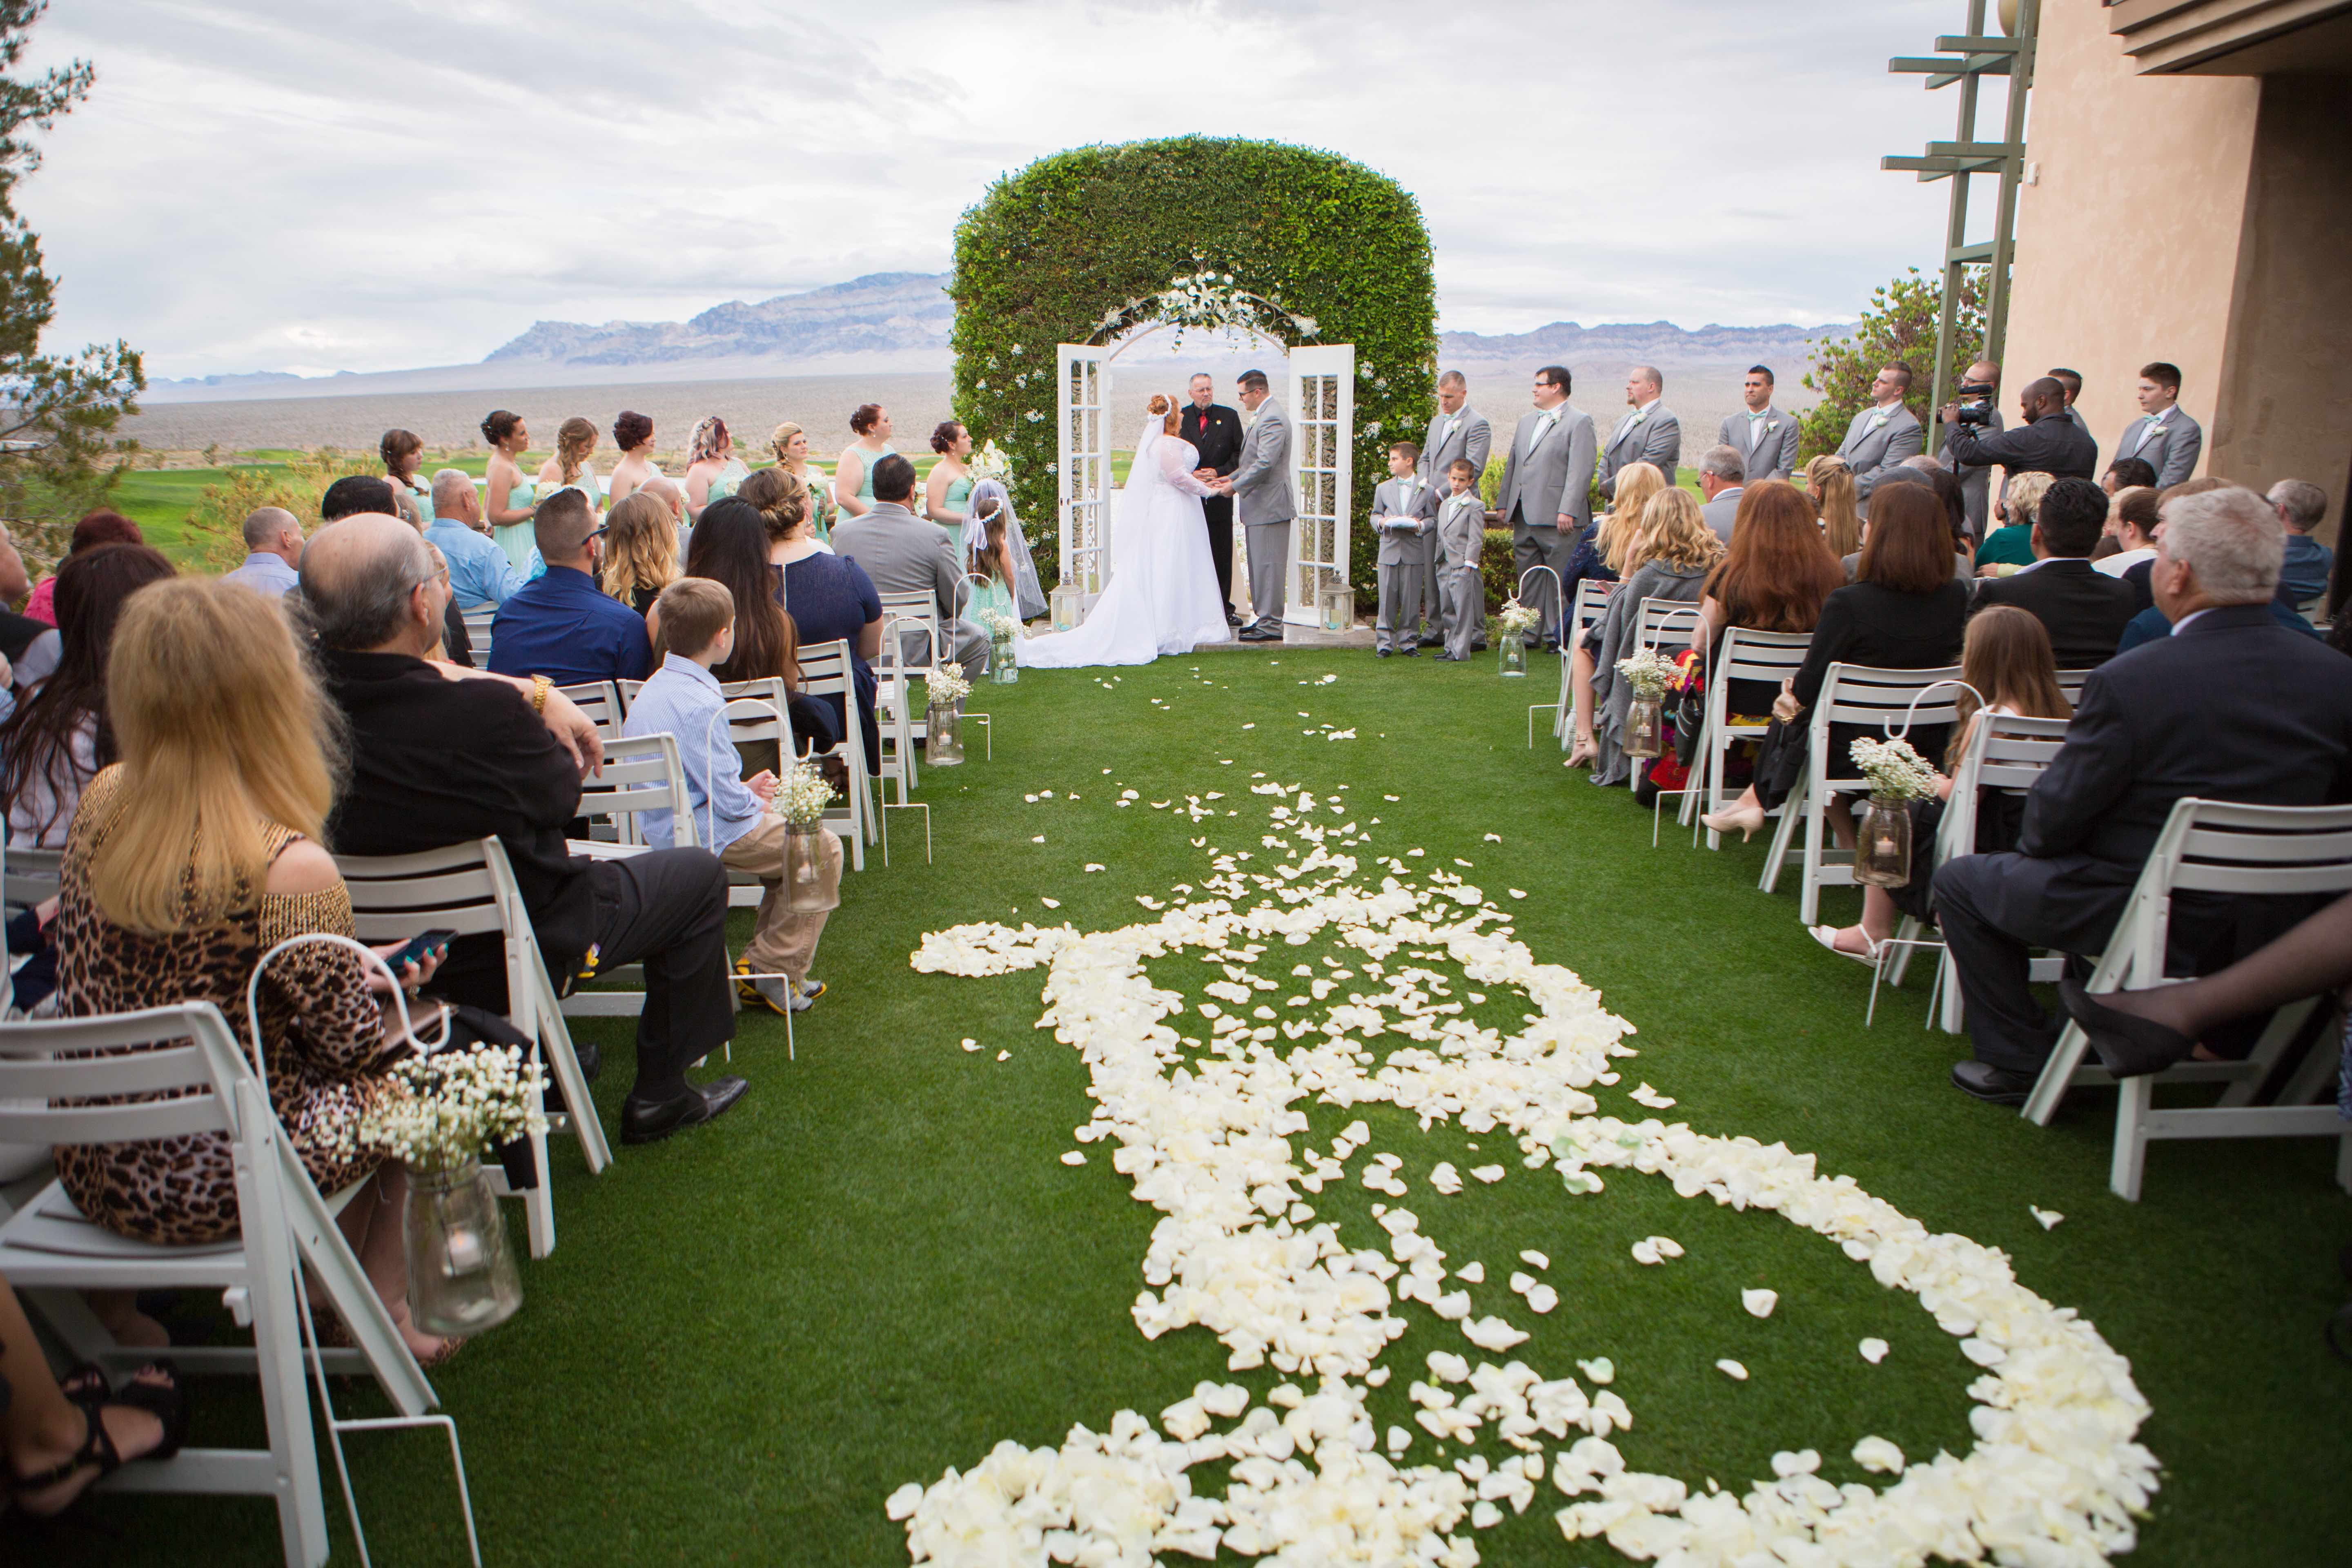 Wedding Venue Las Vegas Paiute Golf Resort Photography Www Vitamincphoto Videographer Lighten Films Makeup In The 702